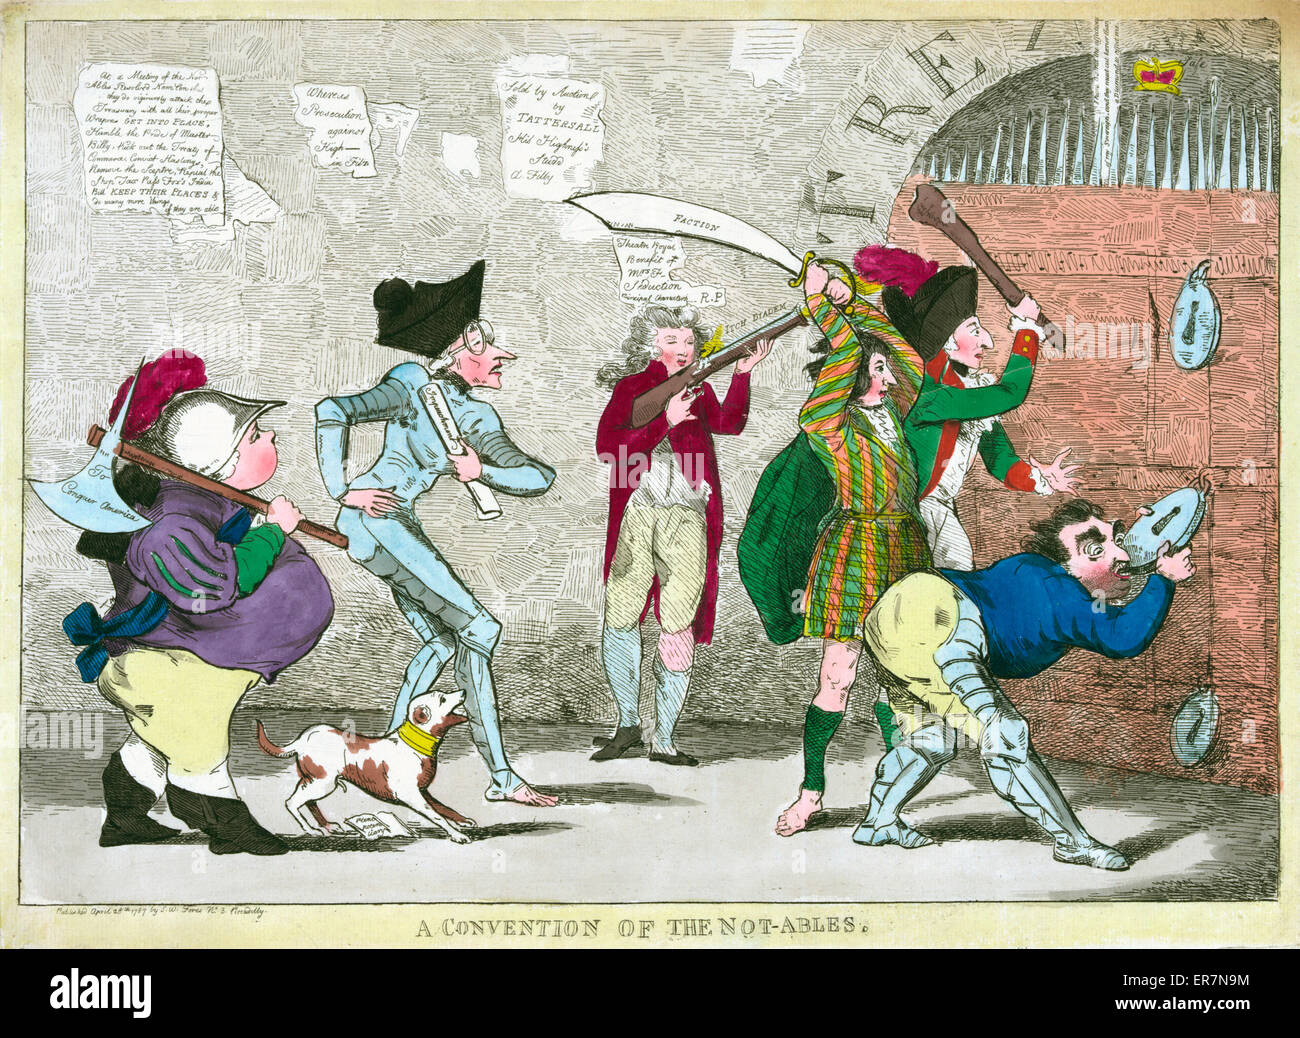 A convention of the not-ables. Print shows Lord North, Edmund Burke, Charles Fox, the Prince of Wales, and others - Stock Image